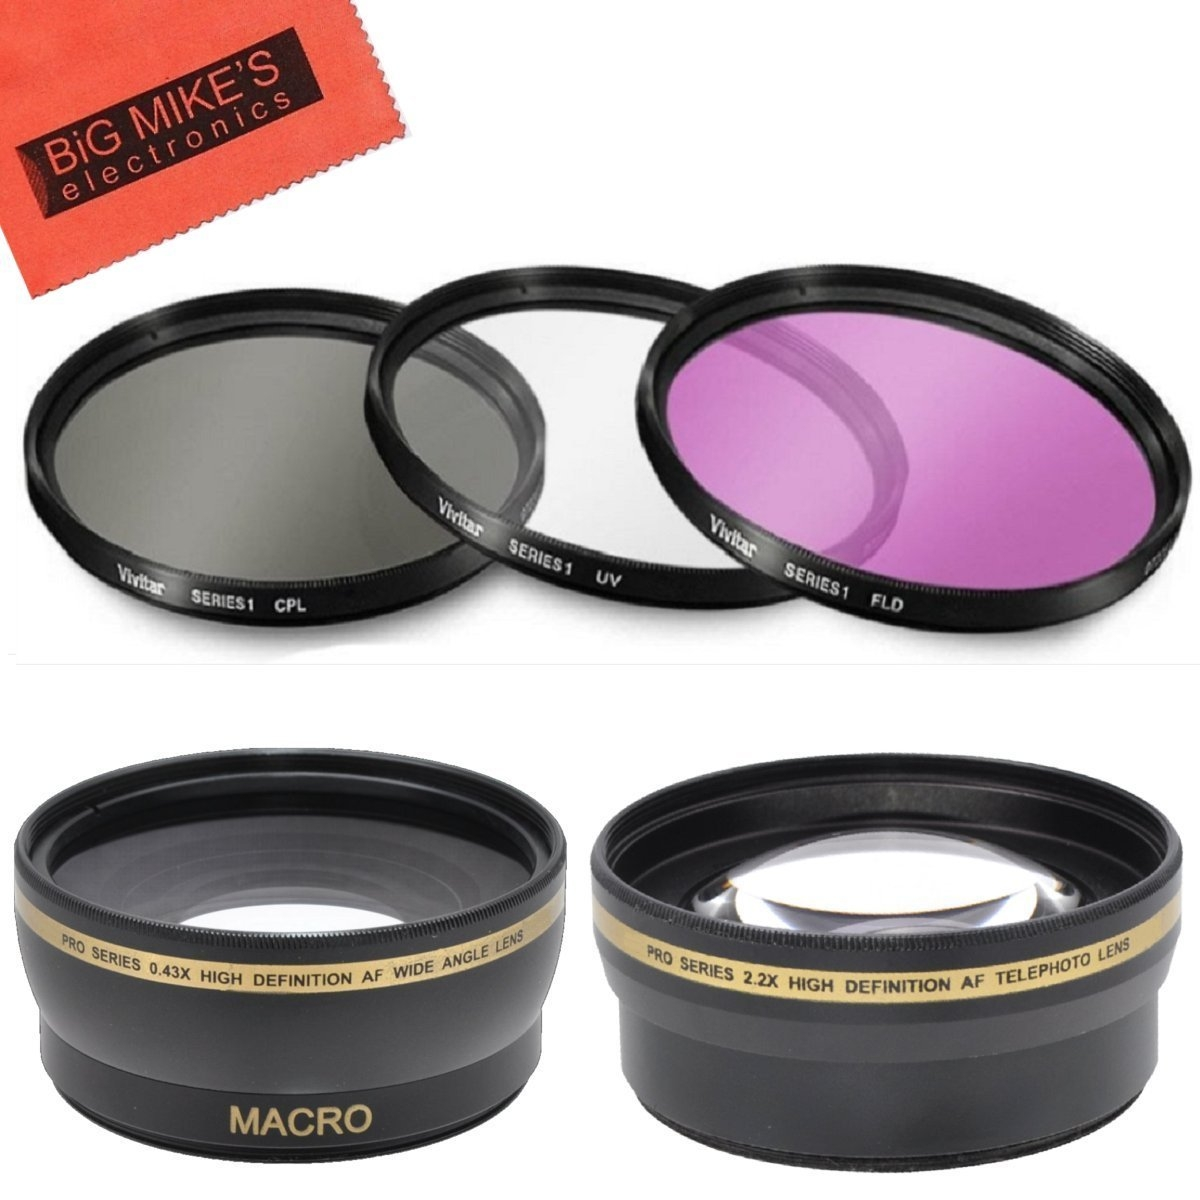 Deluxe Lens Kit for panasonic AG-HCK10g AG-HMC40PJ AG-HMC80PJ professional camcorder + Includes 43mm PC Filter Kit + 43mm 2X Telephoto Lens + 43mm 0.45x Wide Angle Lens with Macro + MicroFiber...